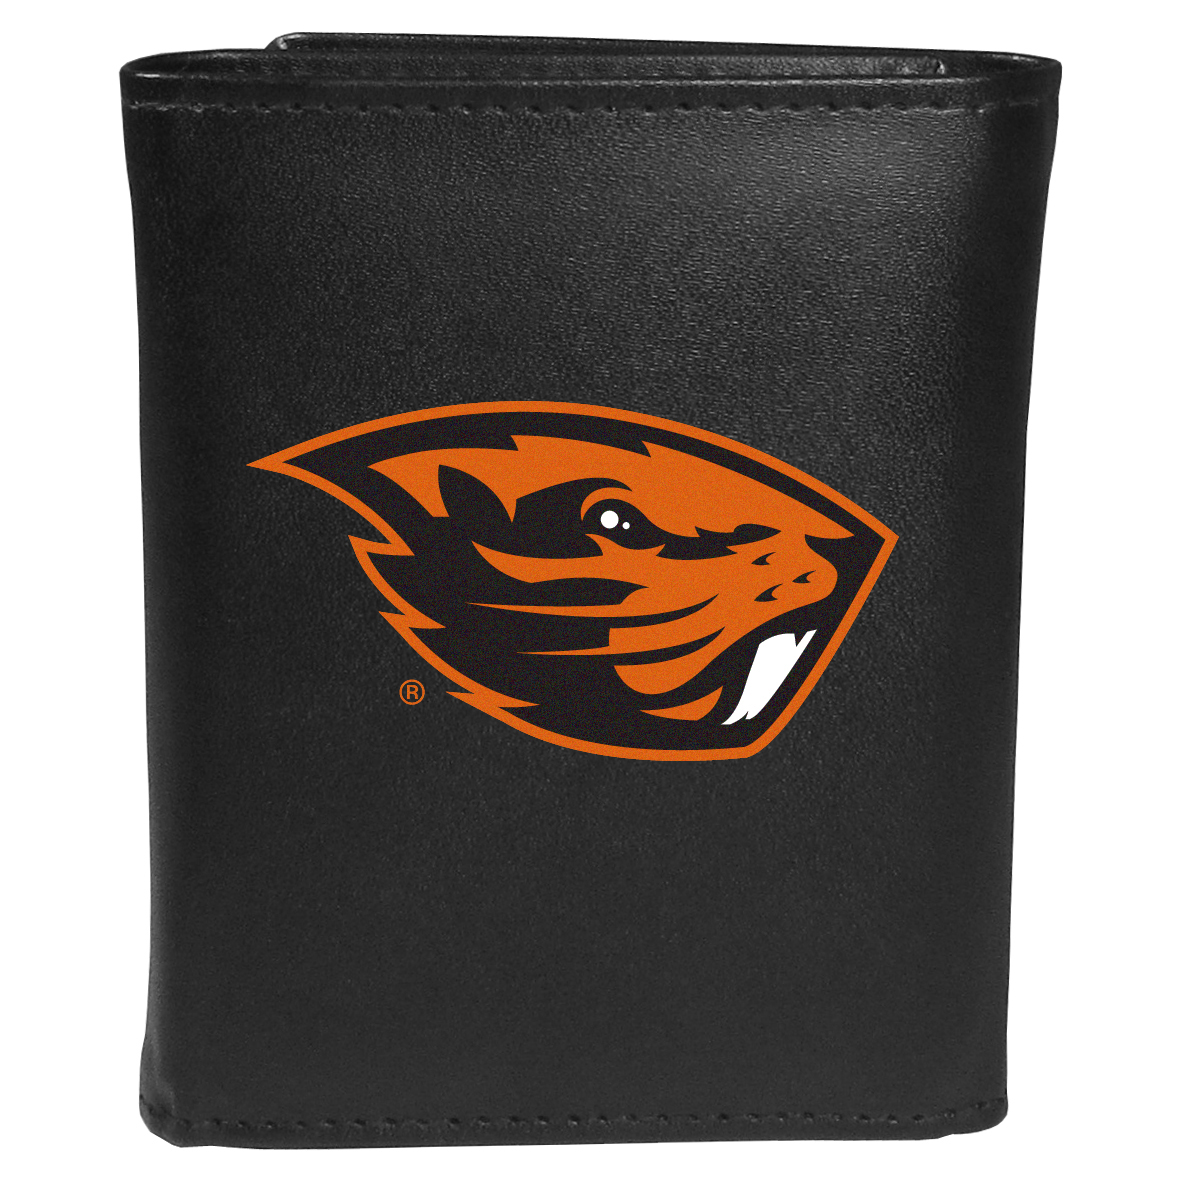 Oregon St. Beavers Tri-fold Wallet Large Logo - Sports fans do not have to sacrifice style with this classic tri-fold wallet that sports theOregon St. Beavers?extra large logo. This men's fashion accessory has a leather grain look and expert craftmanship for a quality wallet at a great price. The wallet features inner credit card slots, windowed ID slot and a large billfold pocket. The front of the wallet features an extra large printed team logo.